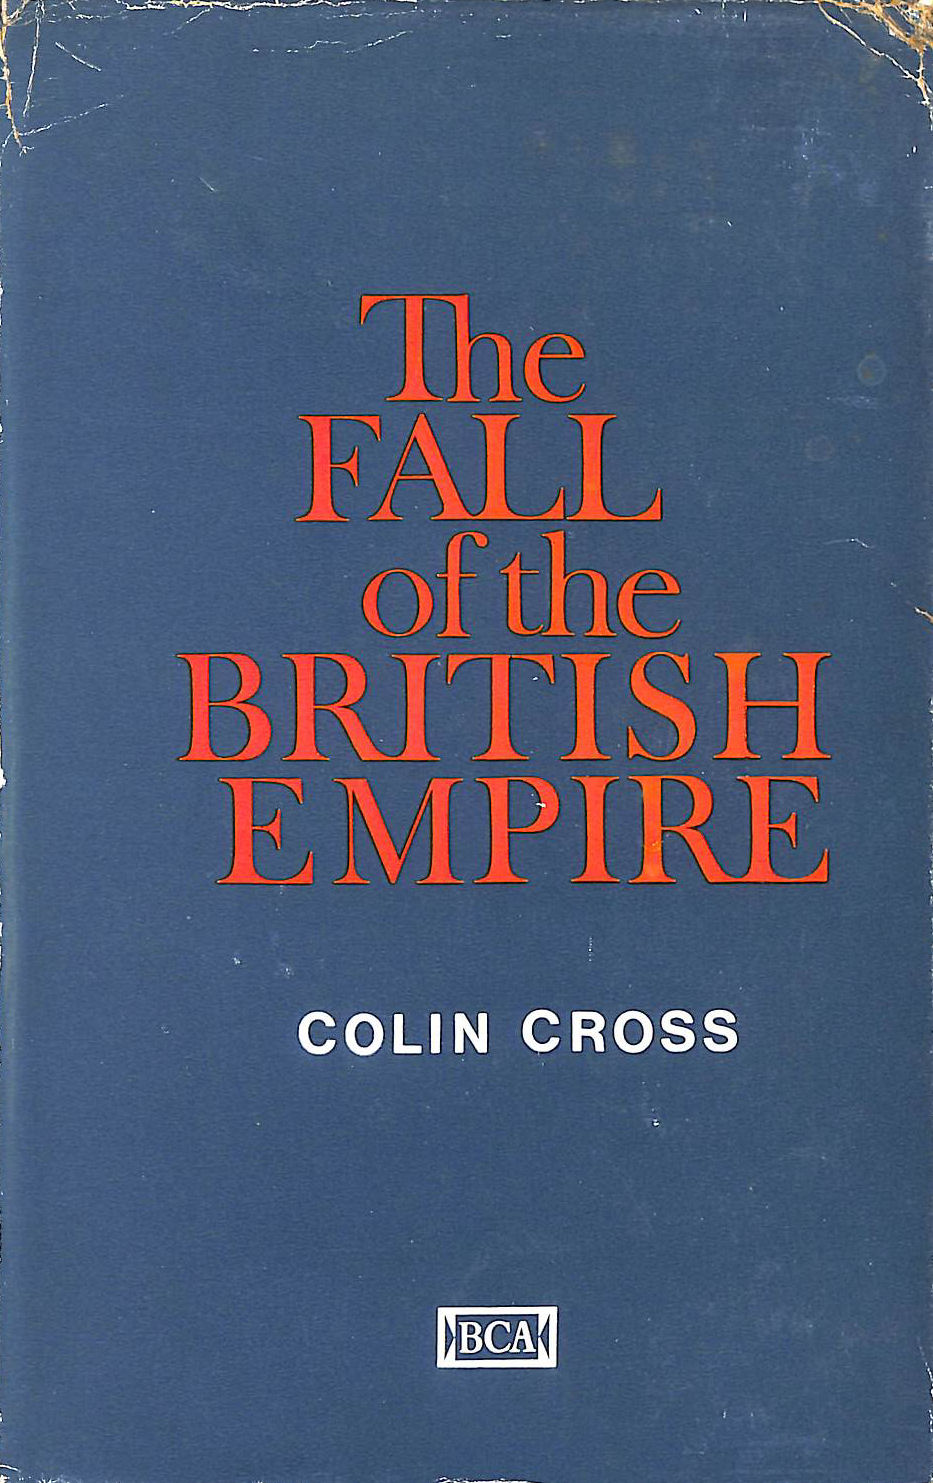 Image for The Fall and Rise of the British Empire 1918-1968 by Colin Cross